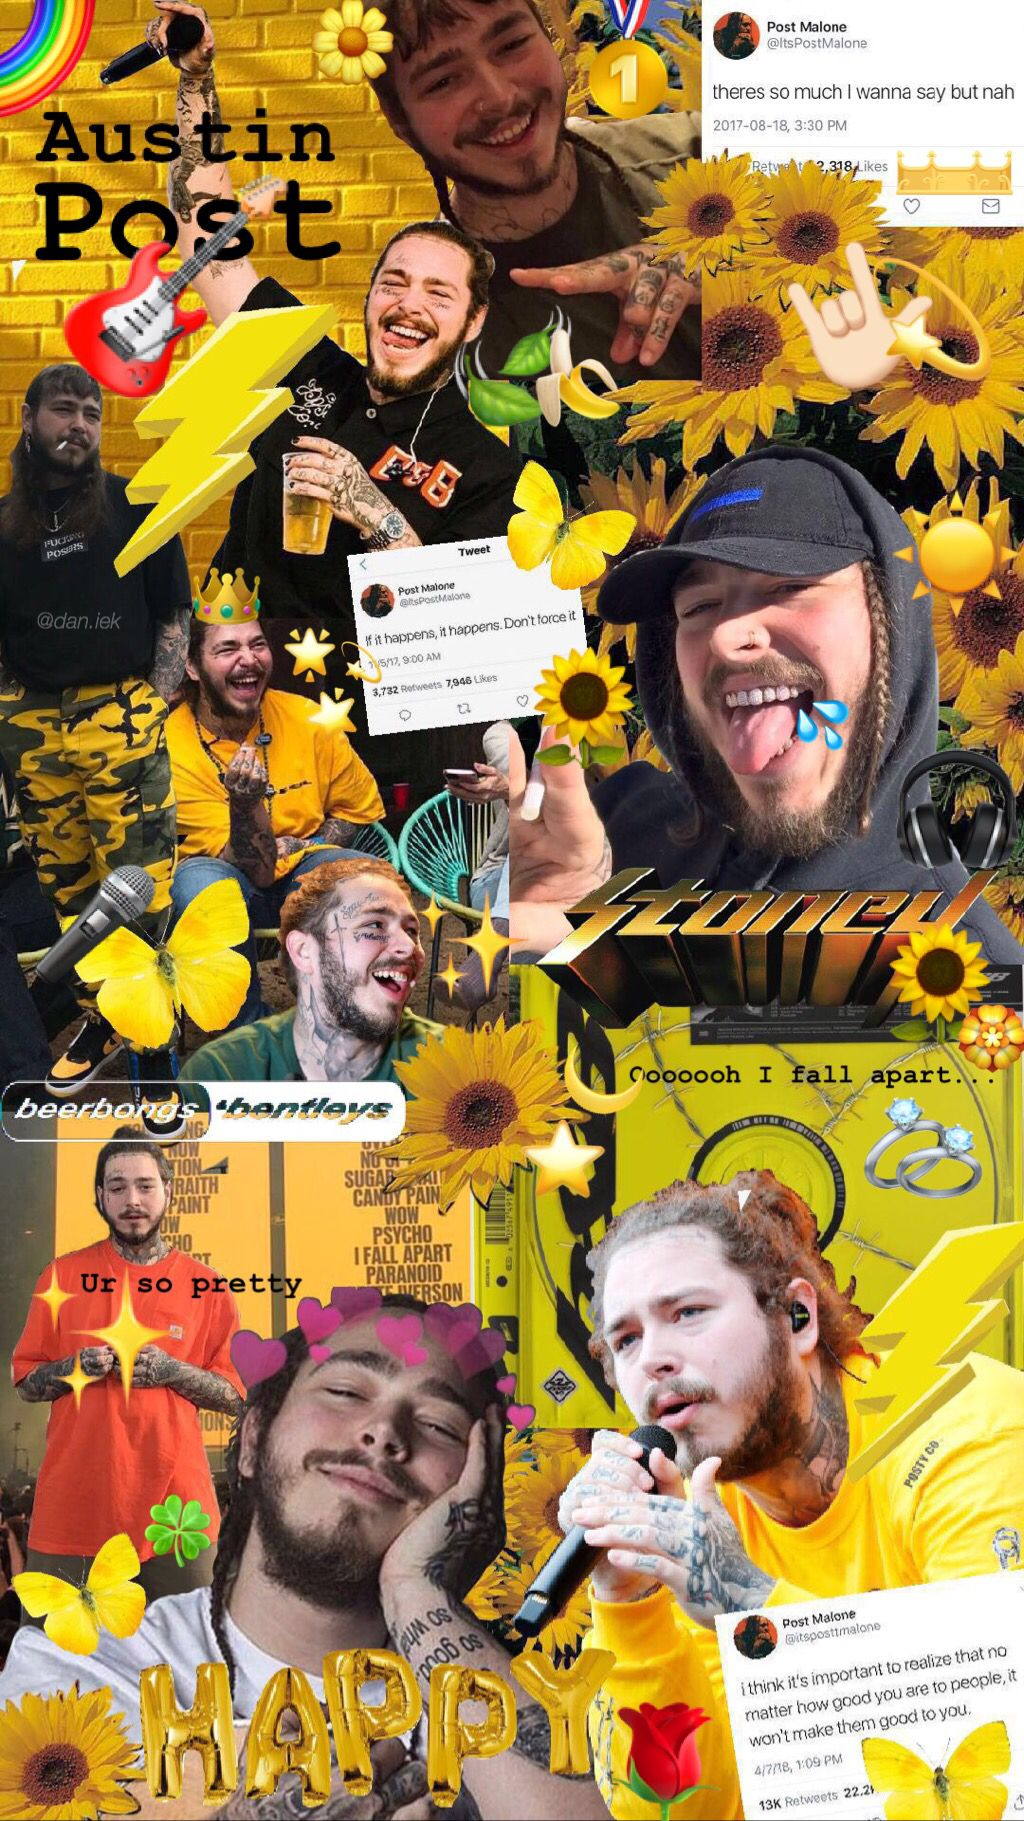 Pin by Cara Jenkins on Wallpapers Post malone wallpaper